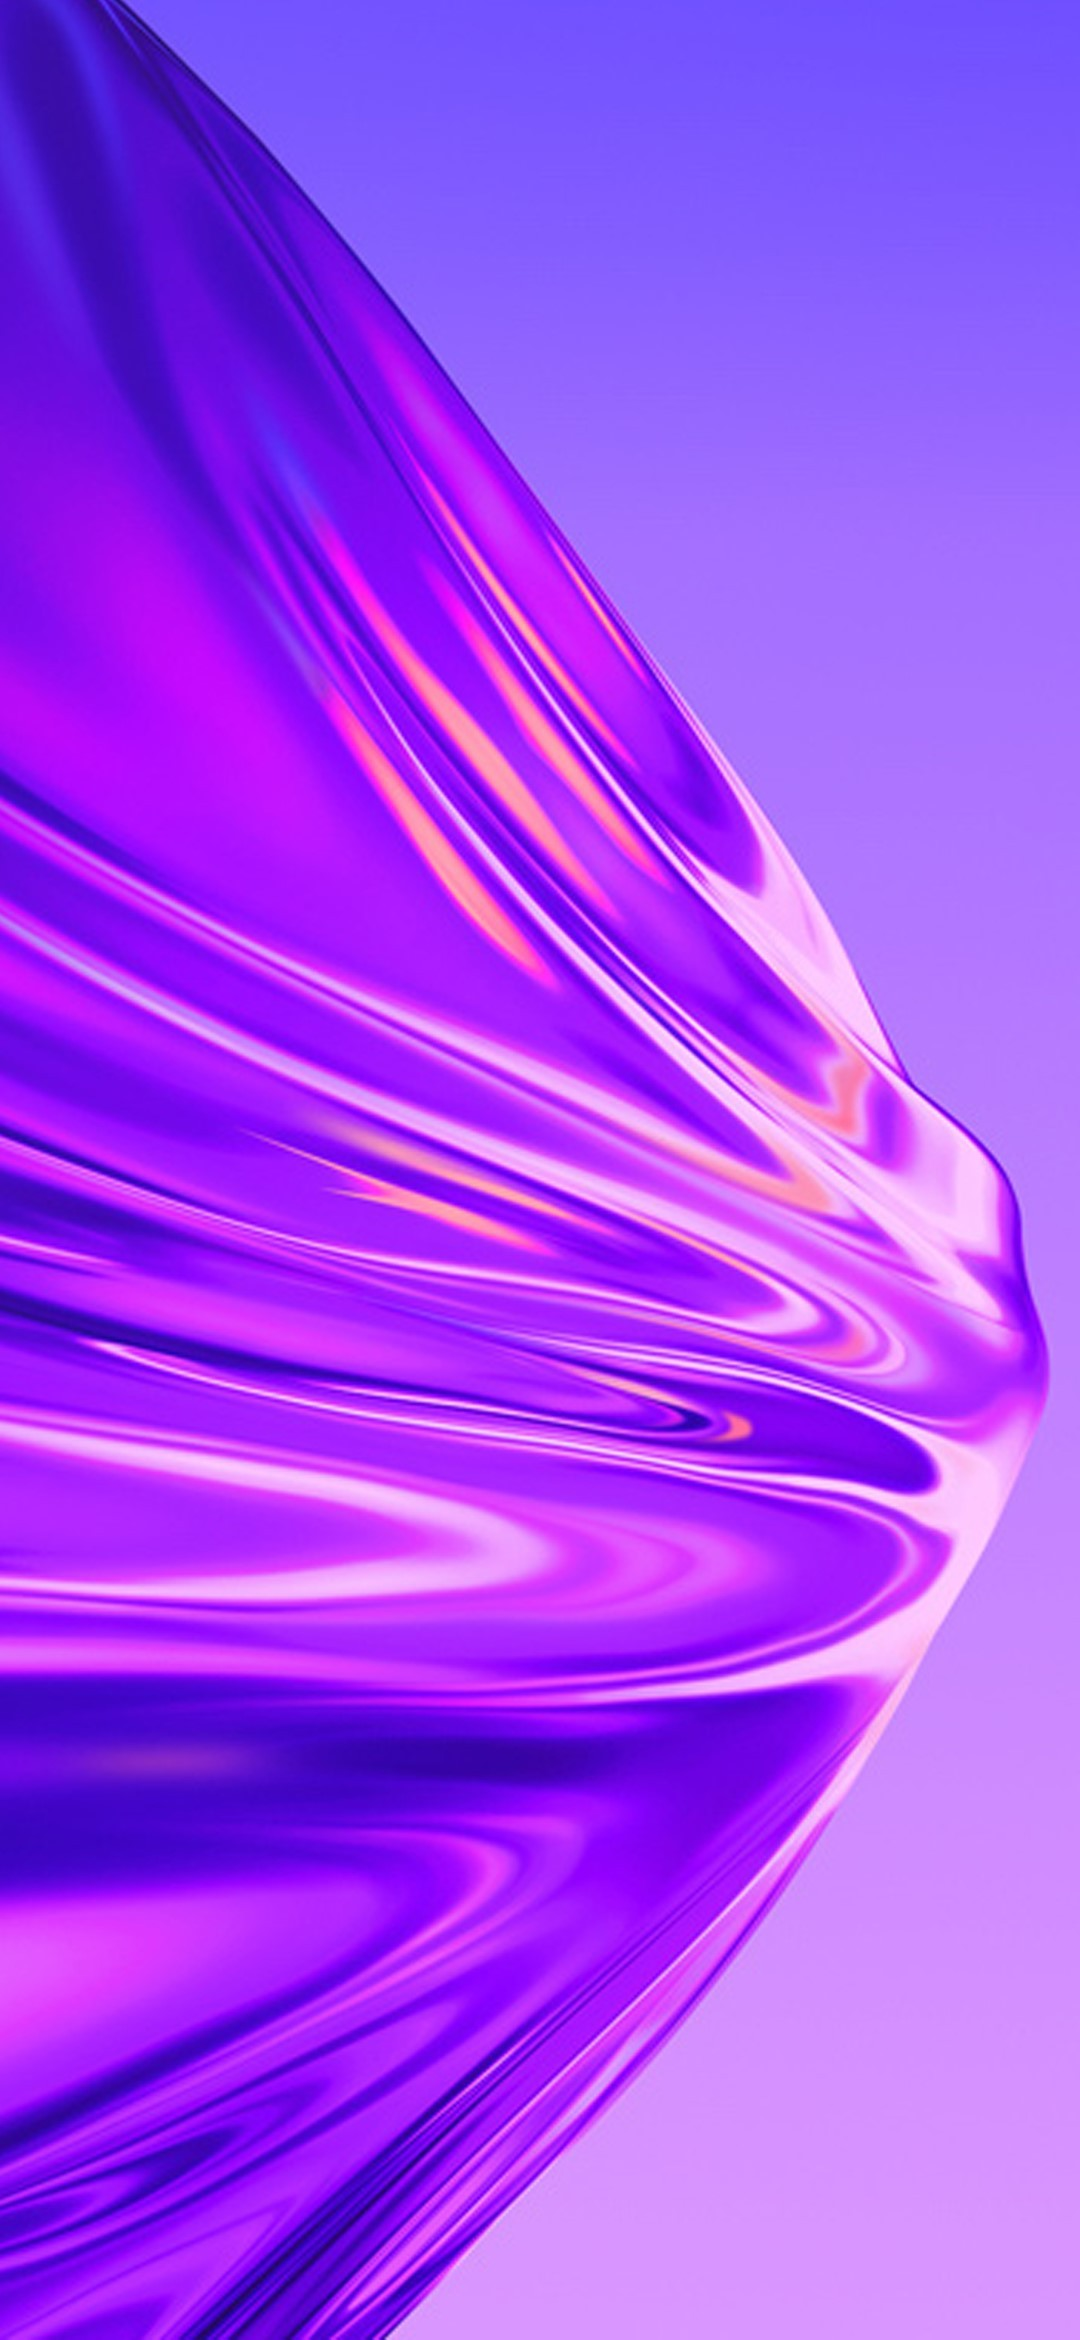 Android Wallpaper - KoLPaPer - Awesome Free HD Wallpapers